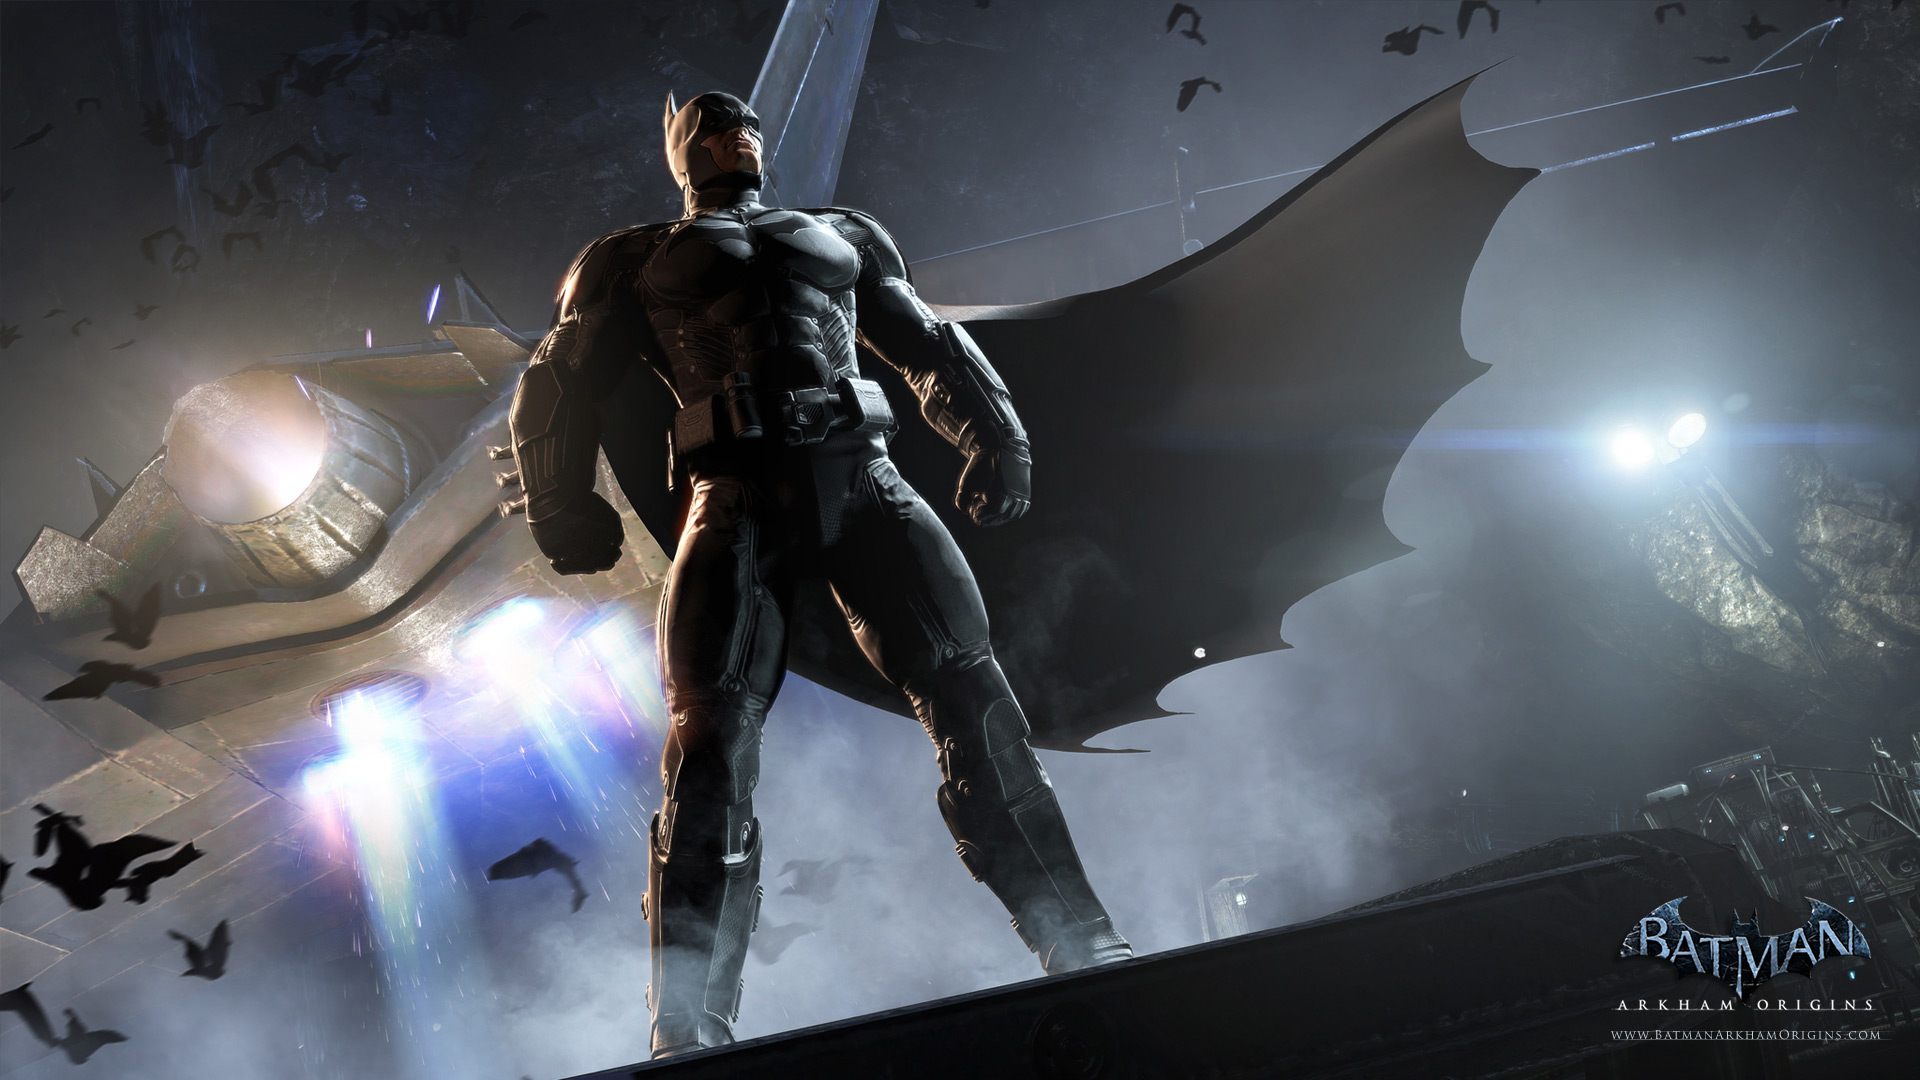 Batman Arkham Origins Full HD Wallpaper And Background Image